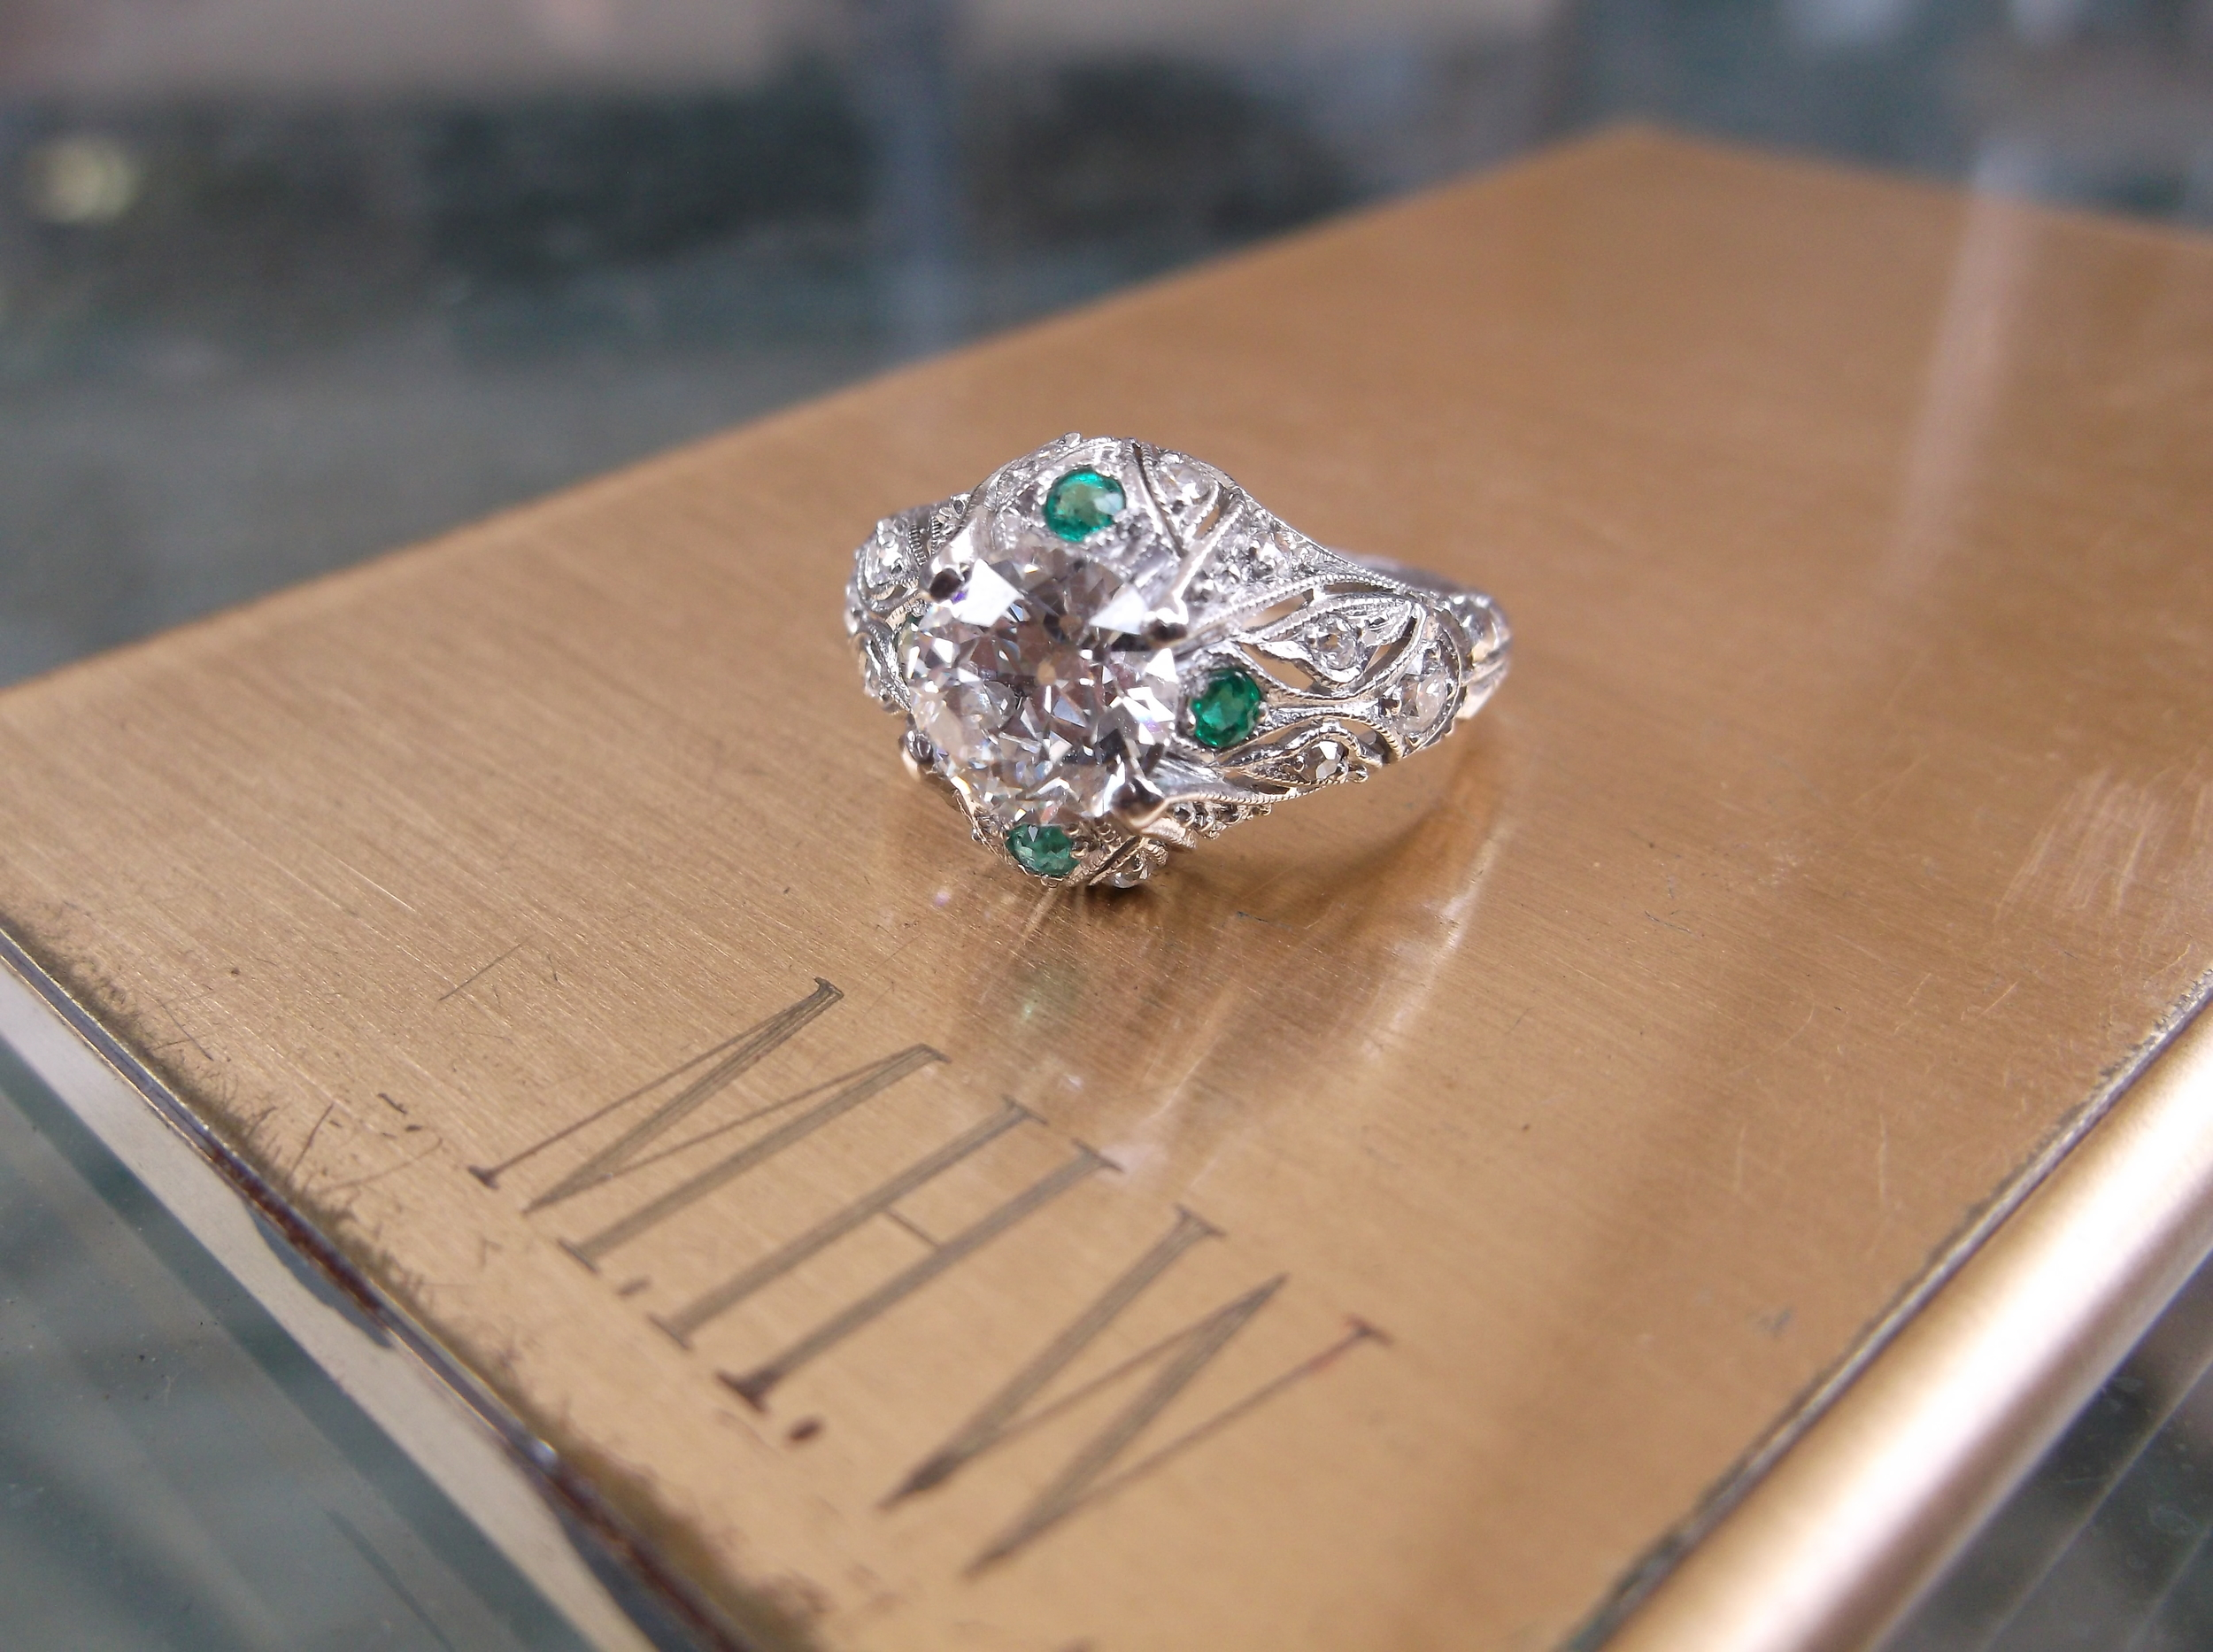 SOLD - Enchanting 1920's 1.04 carat diamond ring set in a platinum filigree setting with beautiful emerald details!